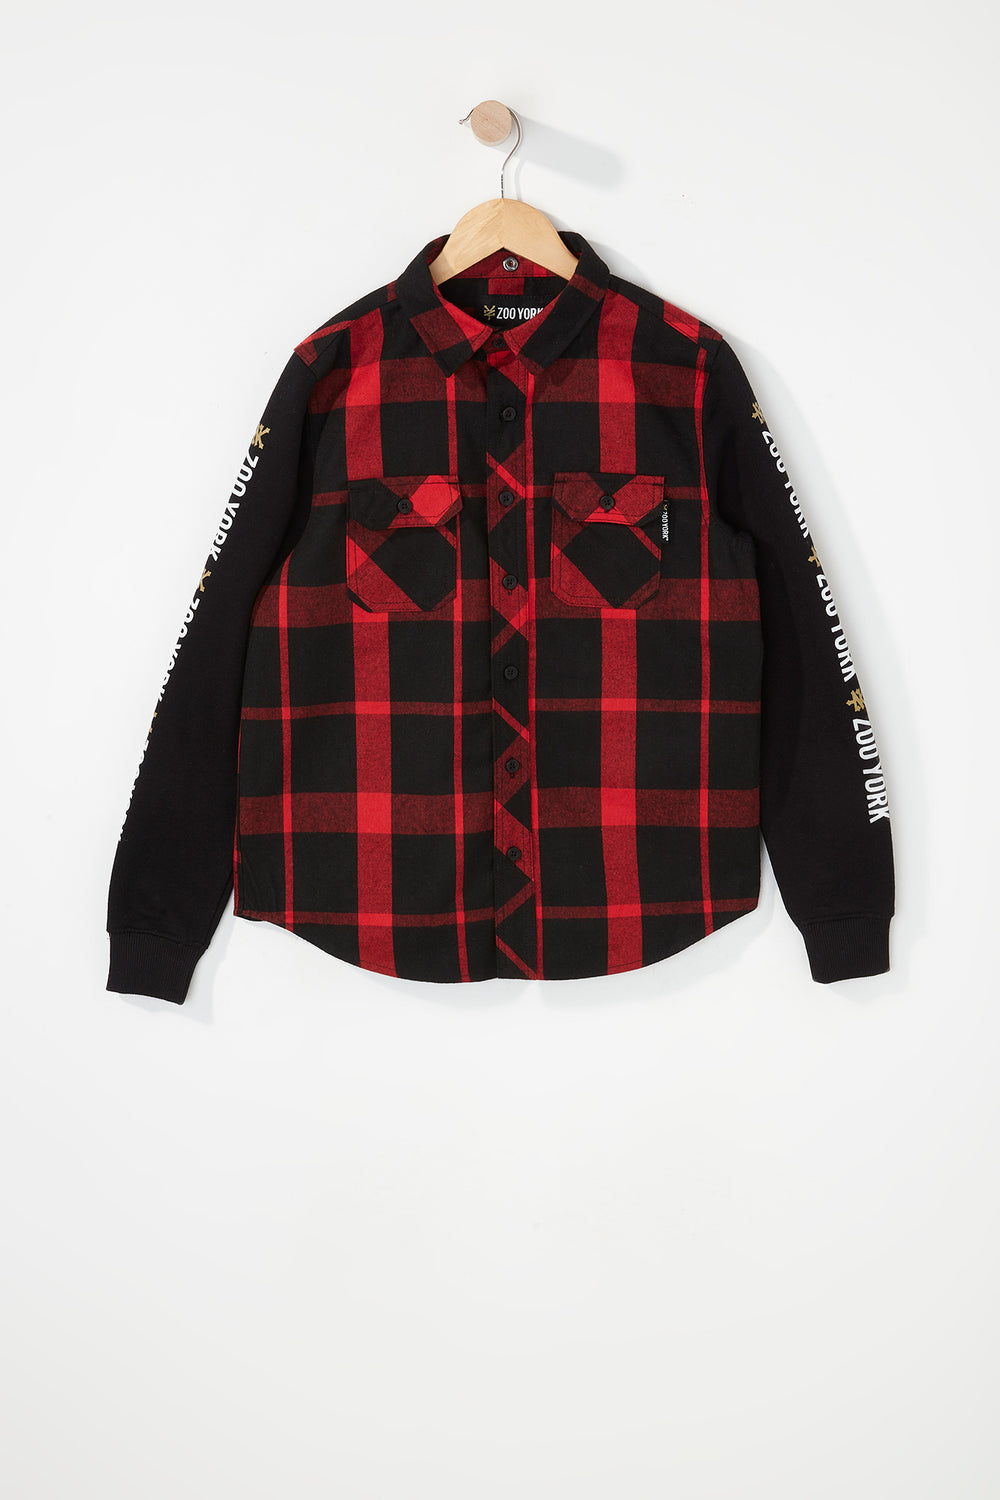 Zoo York Boys Hooded Flannel Button-Up Shirt Red